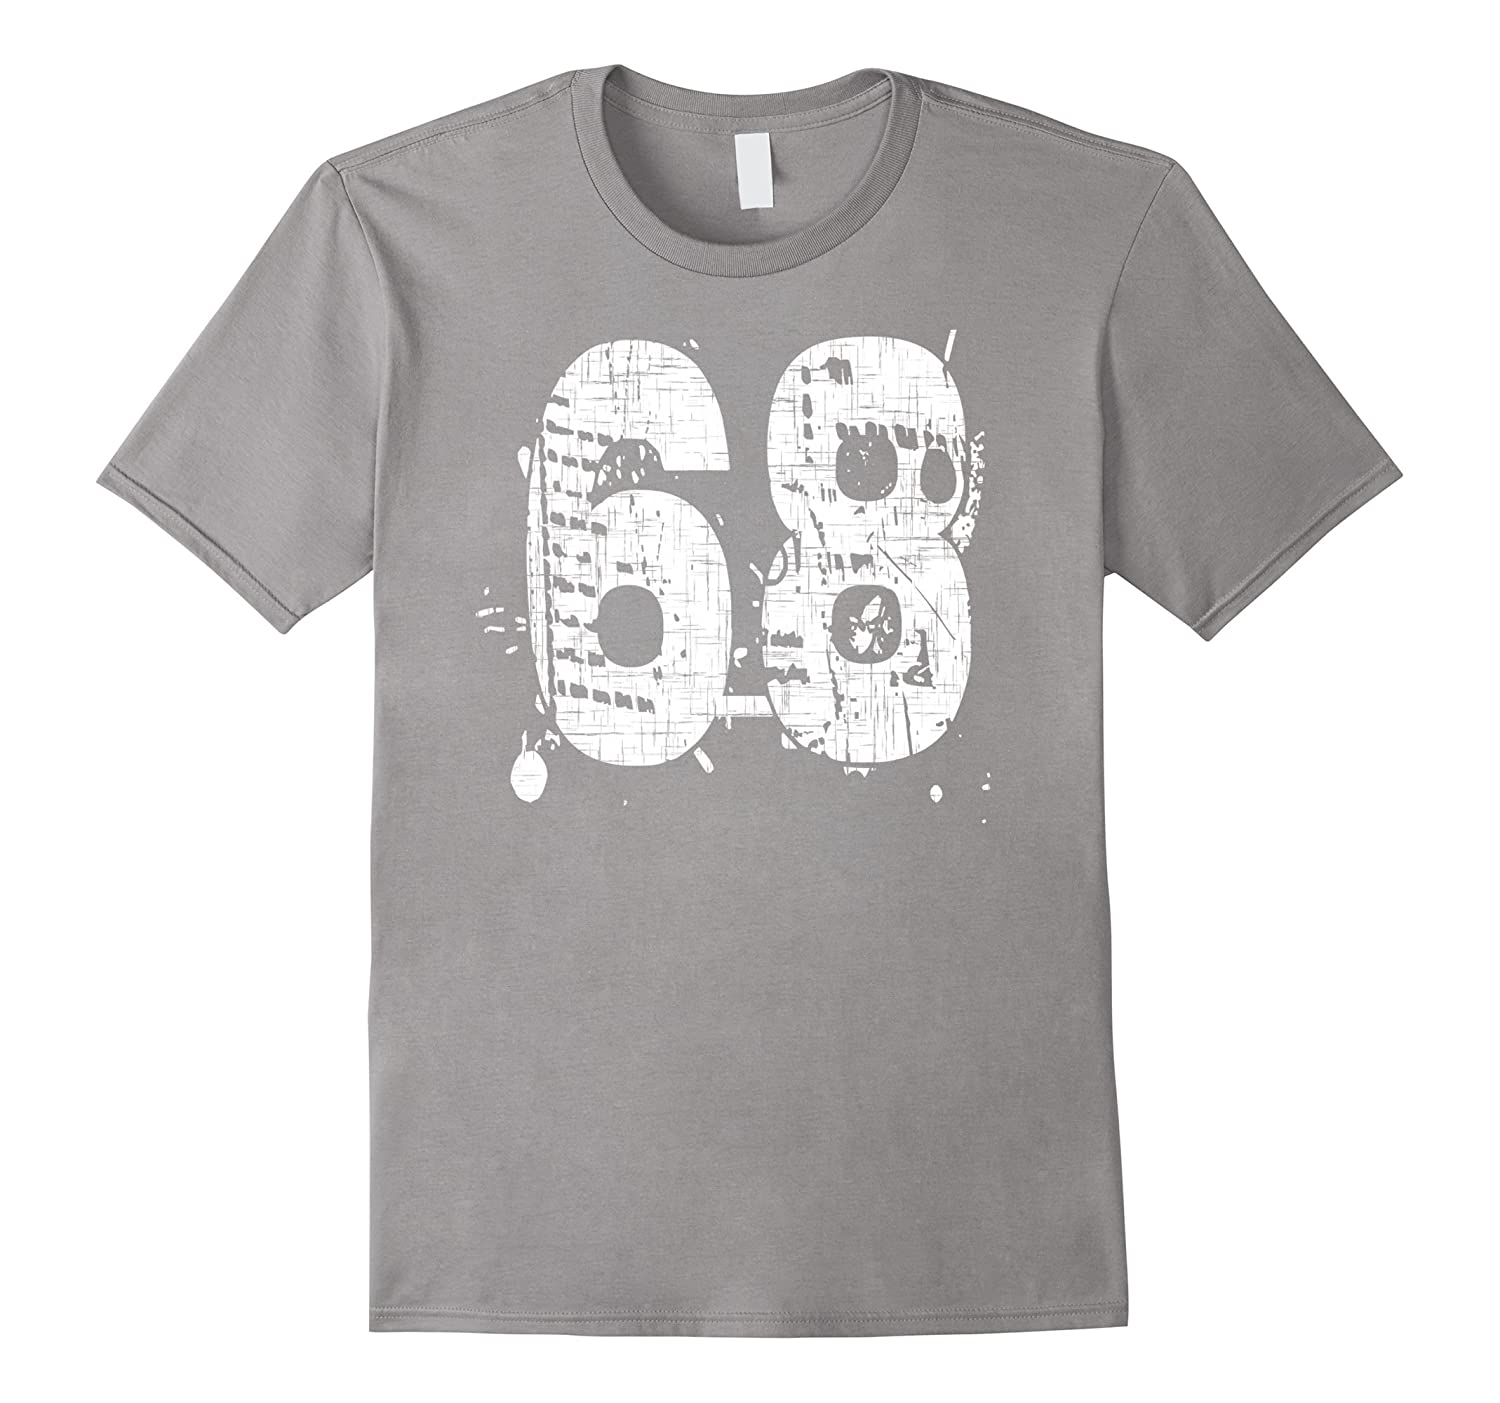 68 Team T-Shirts printed front and back in super grunge-PL